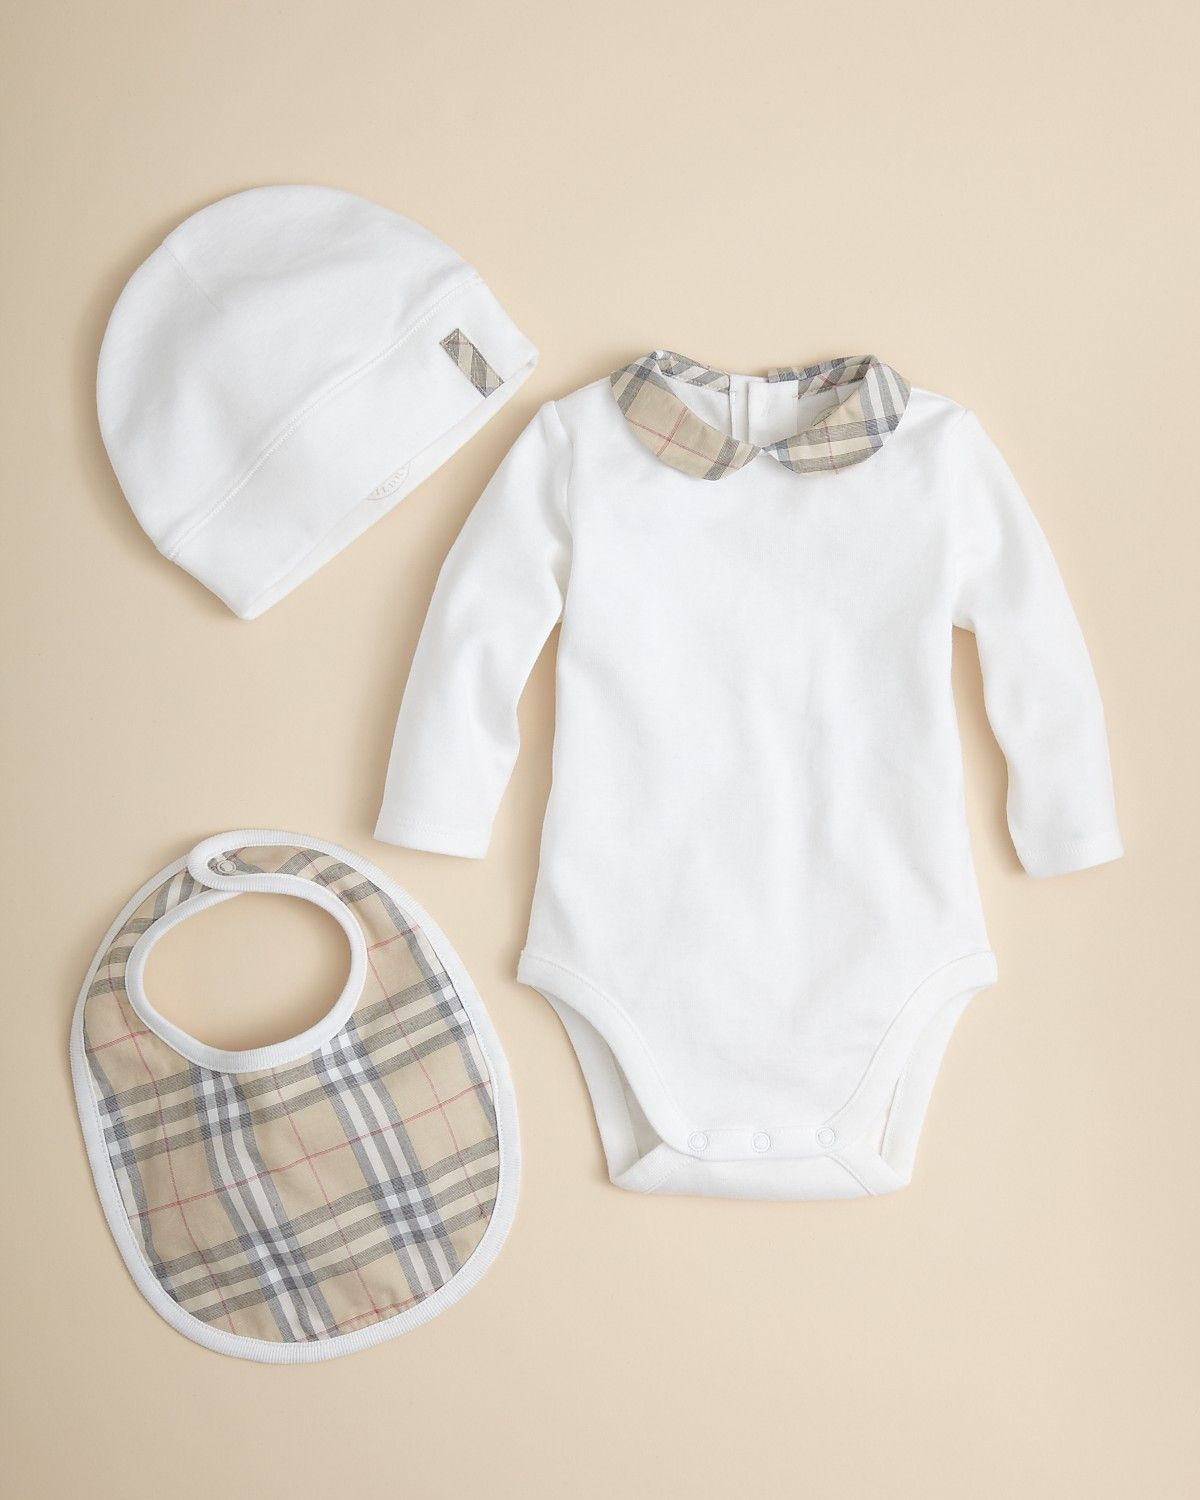 34588e69f37 Infant clothing sets are available in a range of designers such as Burberry…